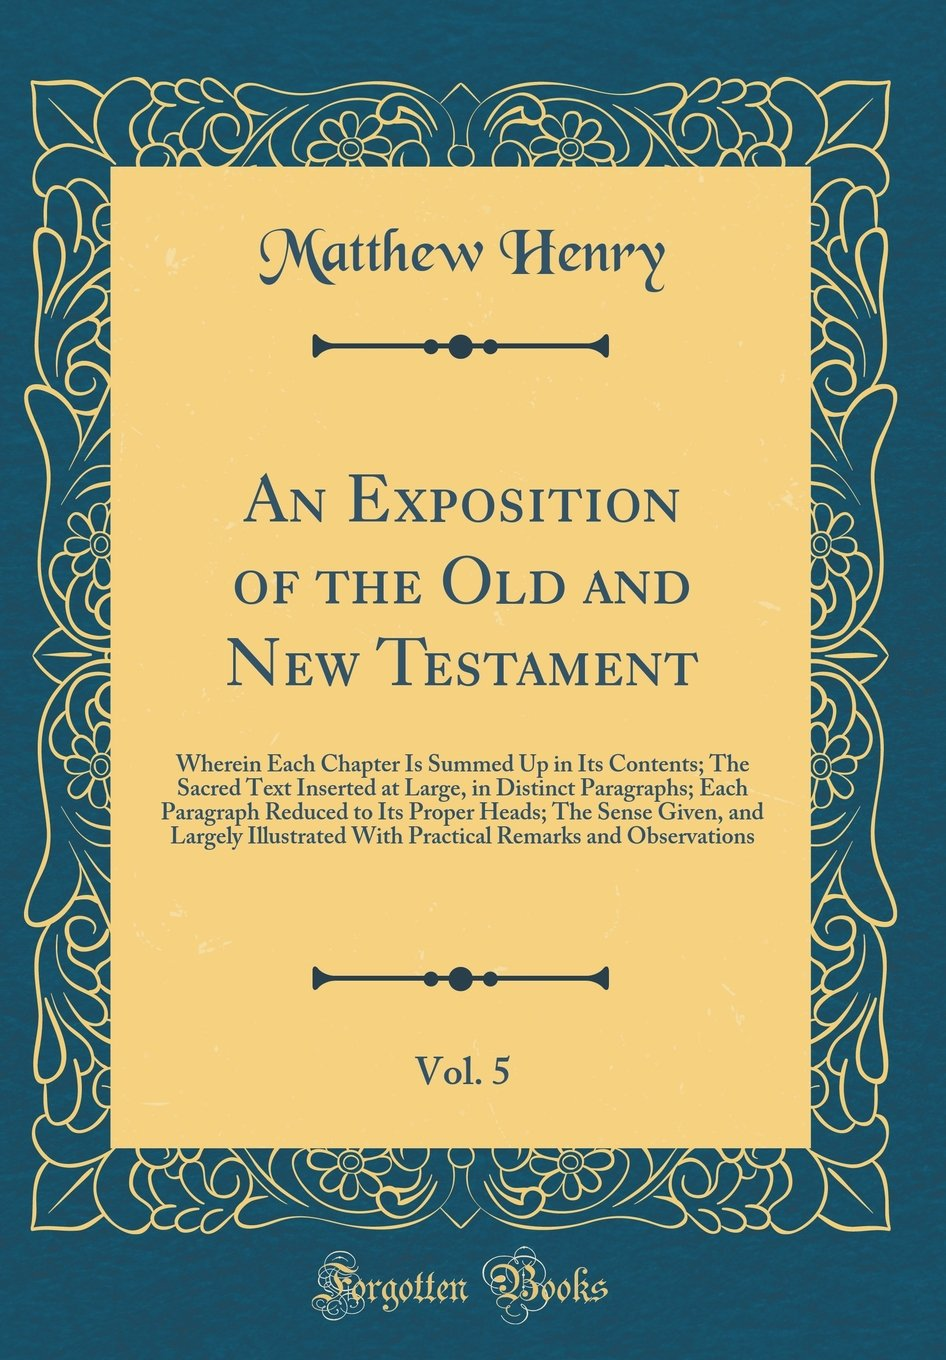 Read Online An Exposition of the Old and New Testament, Vol. 5: Wherein Each Chapter Is Summed Up in Its Contents; The Sacred Text Inserted at Large, in Distinct ... Sense Given, and Largely Illustrated With Pra ebook